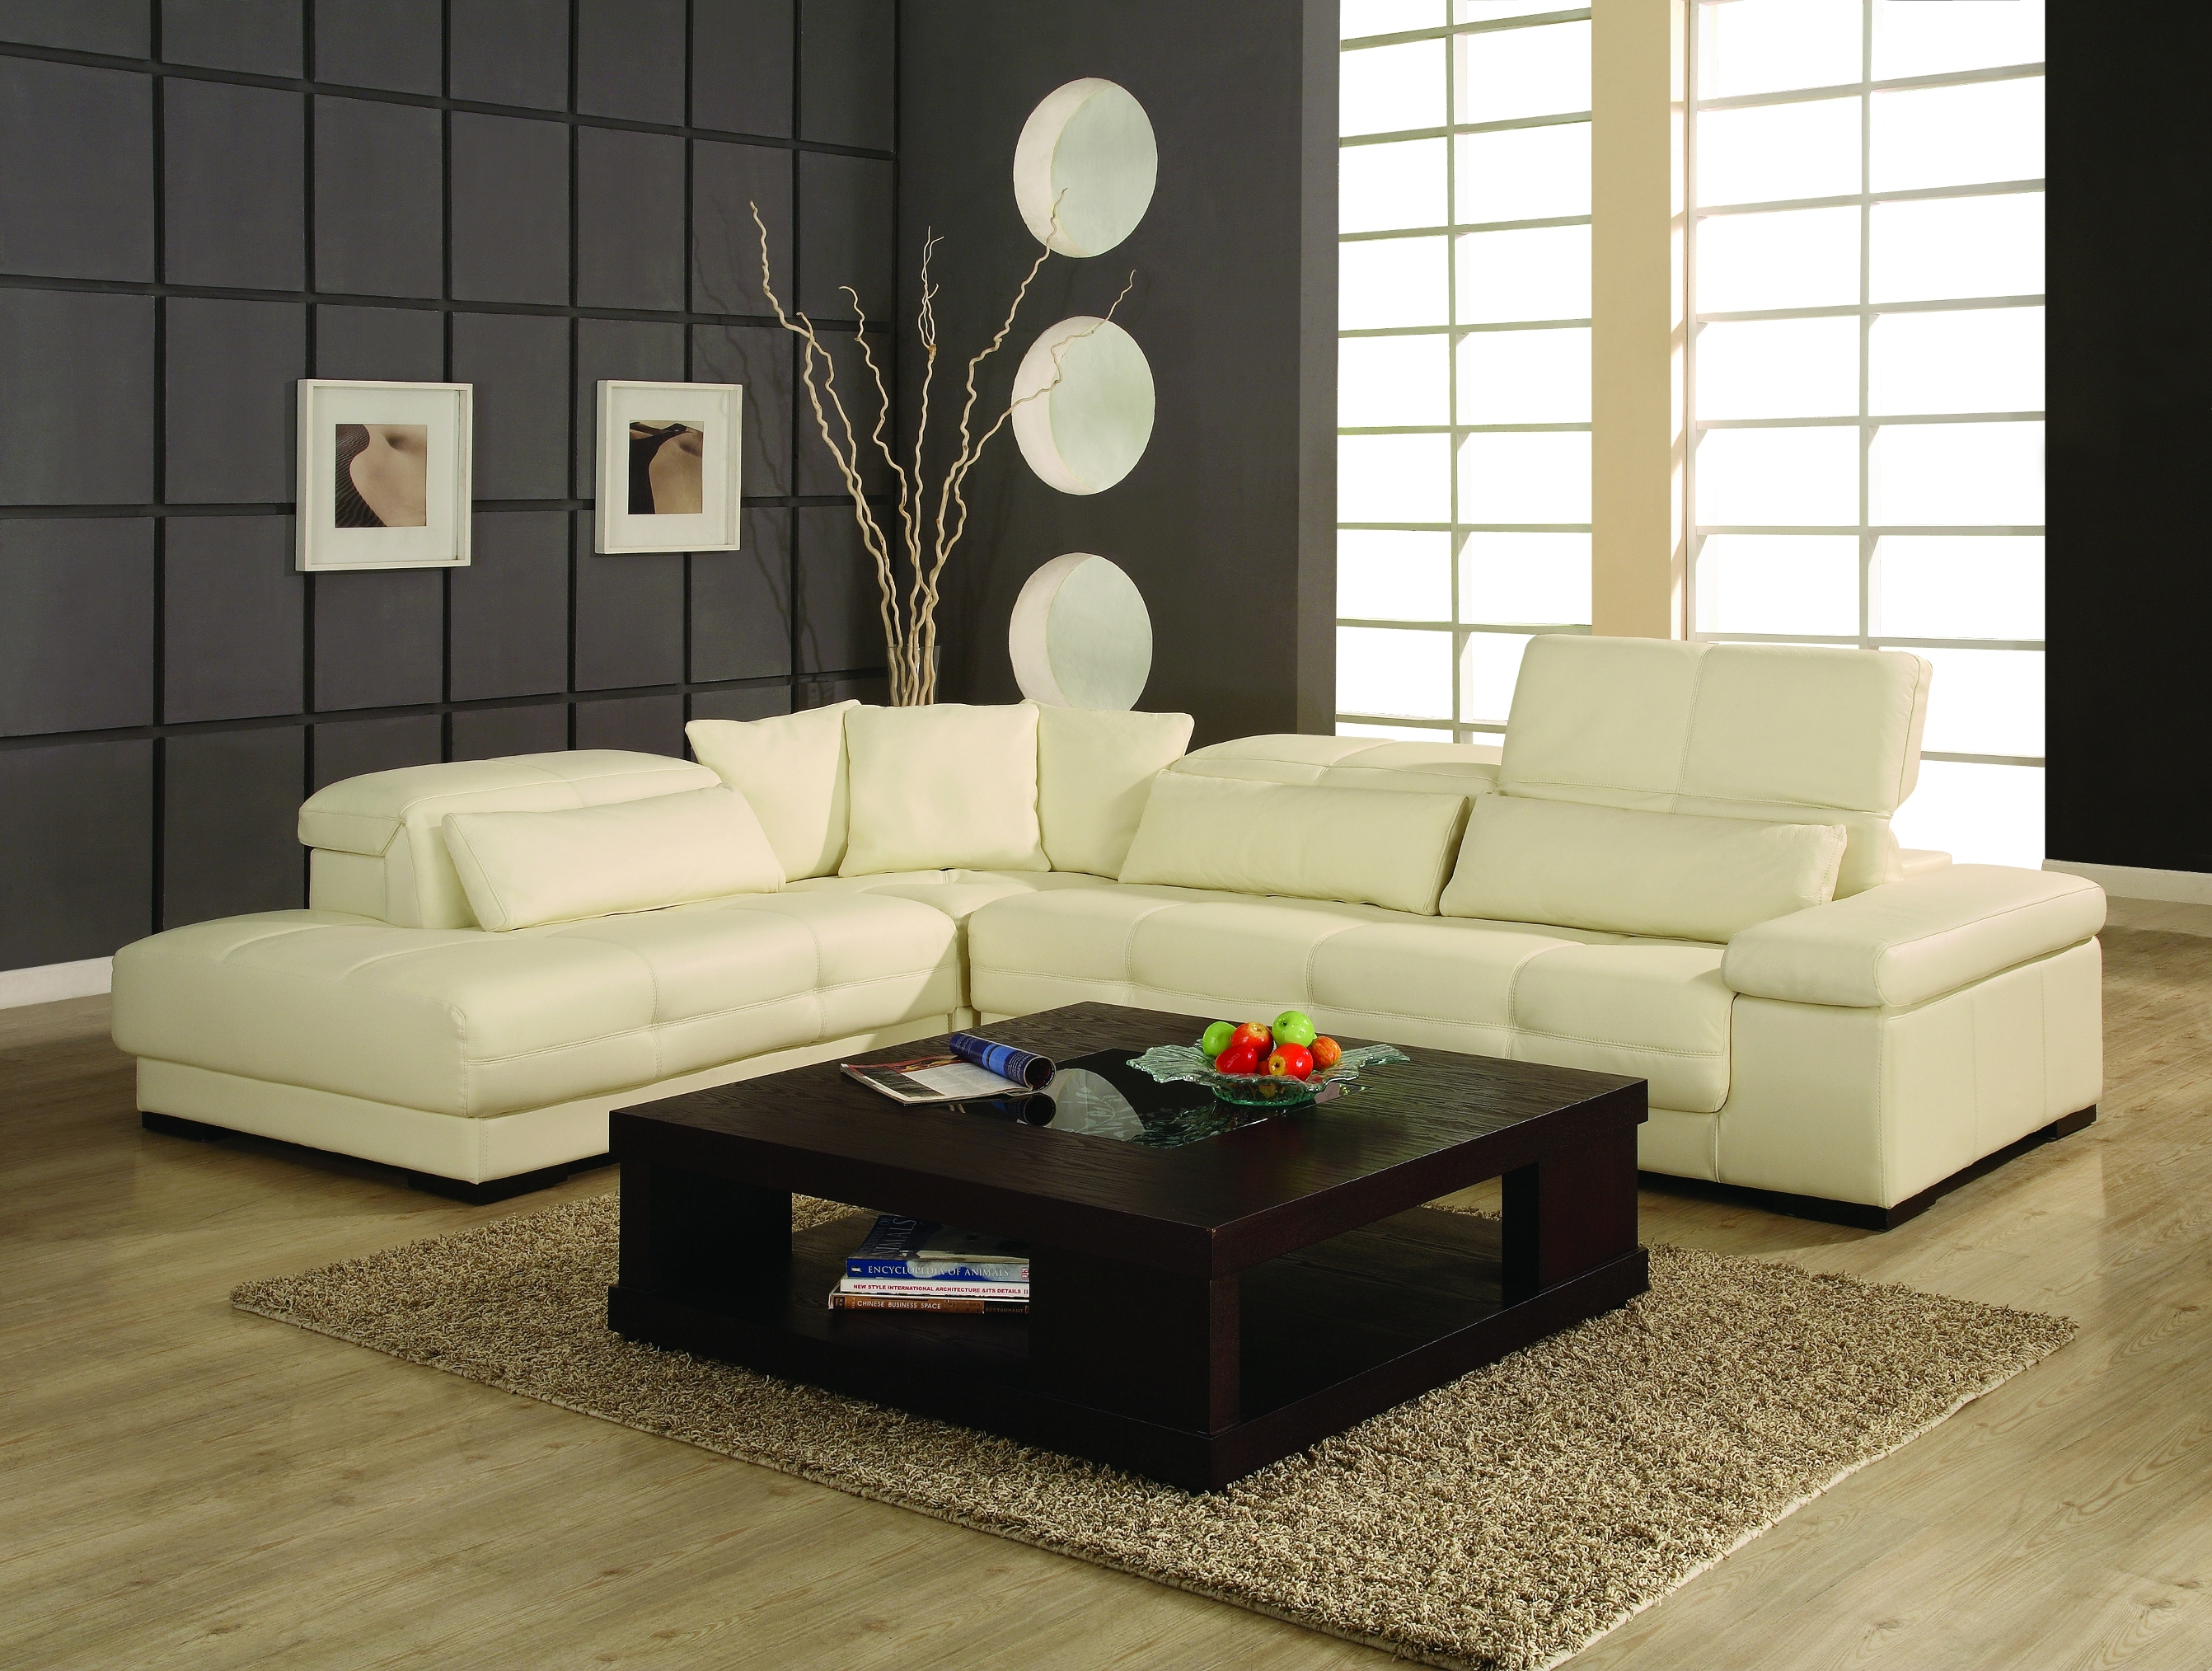 sofa sleeper phoenix tall table with stools bella leather sectional | creative furniture